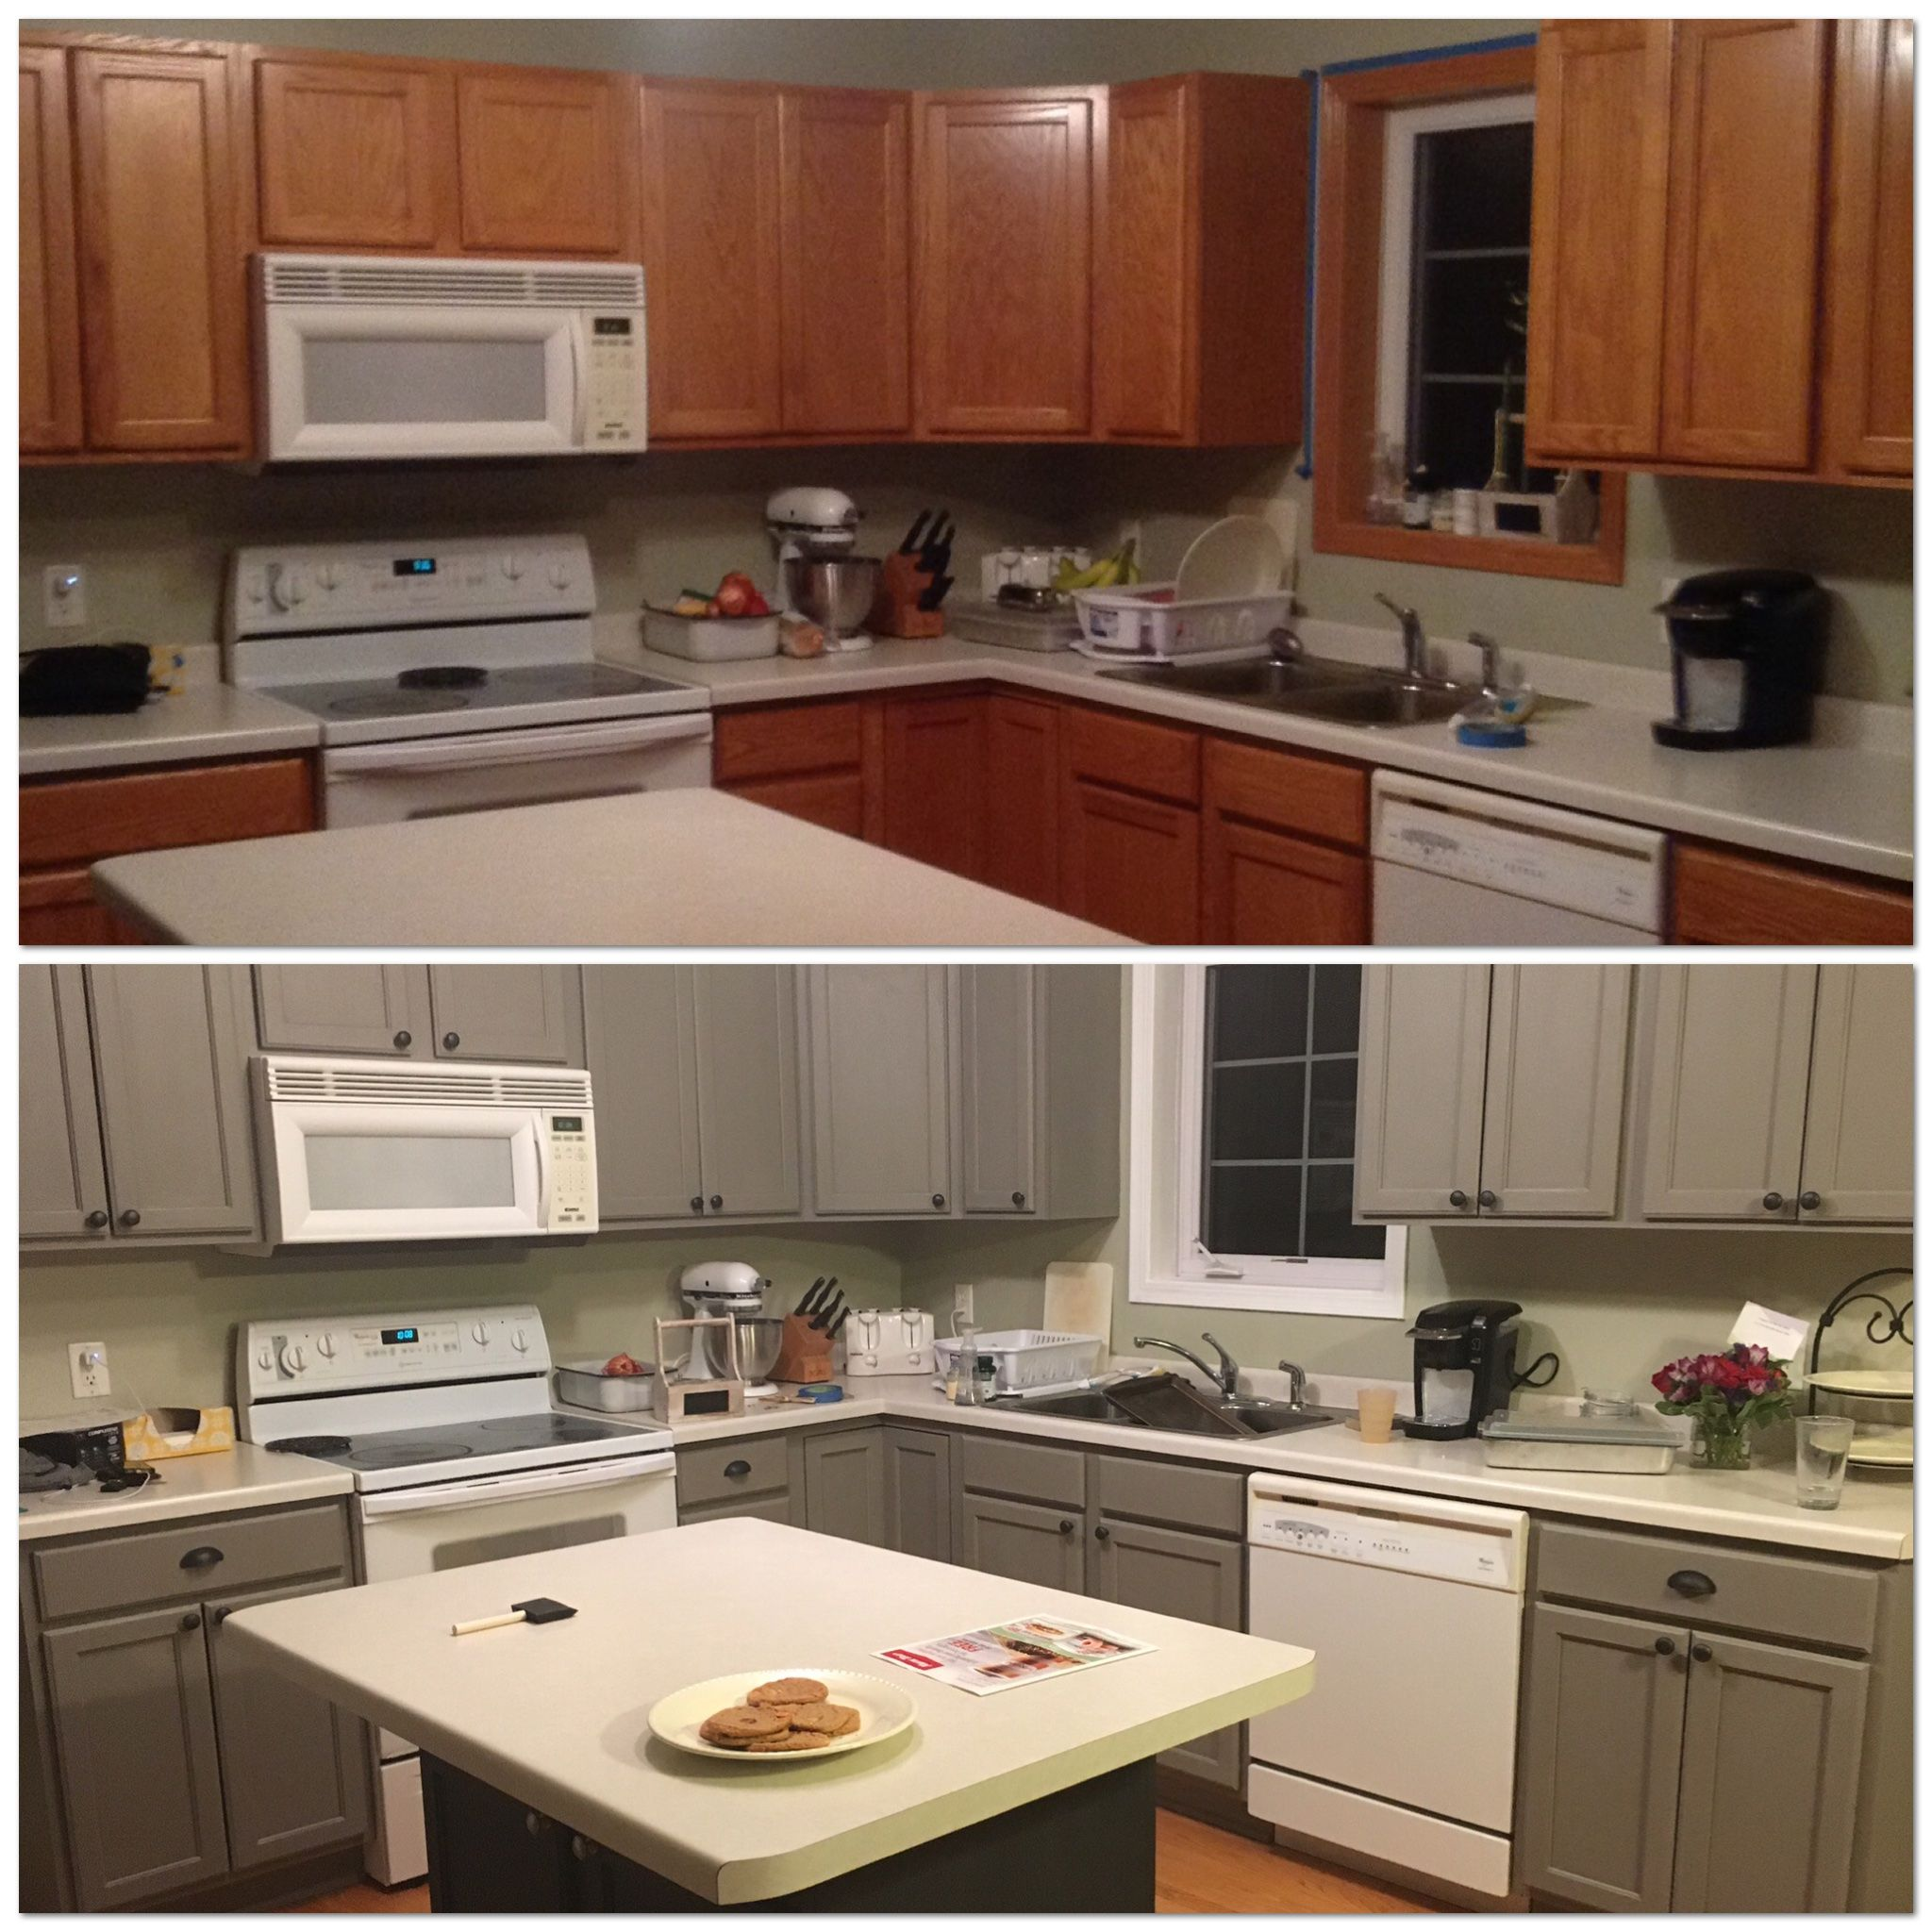 Kitchen Cabinets With Chalk Paint: Before And After Painting My Kitchen Cupboards With Annie